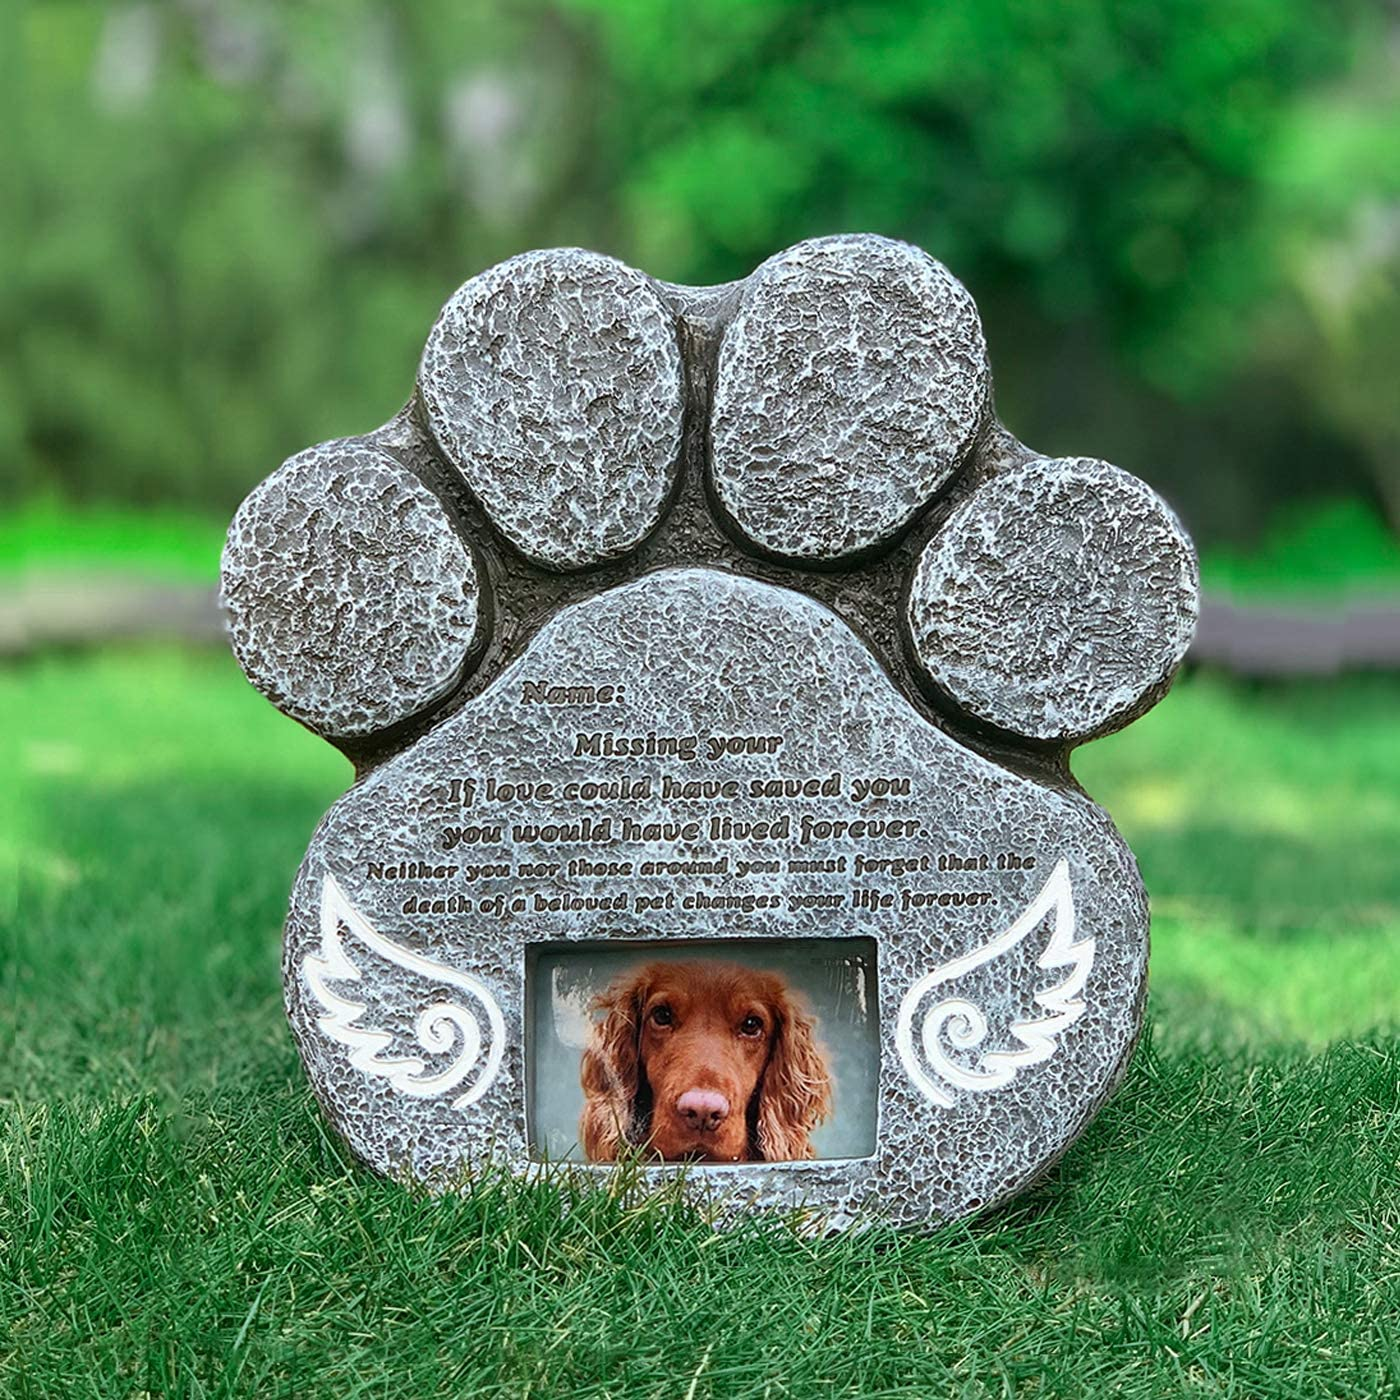 Re-Call Pet Tombstone Dog Paw Shape Engraved Angel Wings Dog Memorial Stone with Waterproof Photo Bag in Lawn and Garden